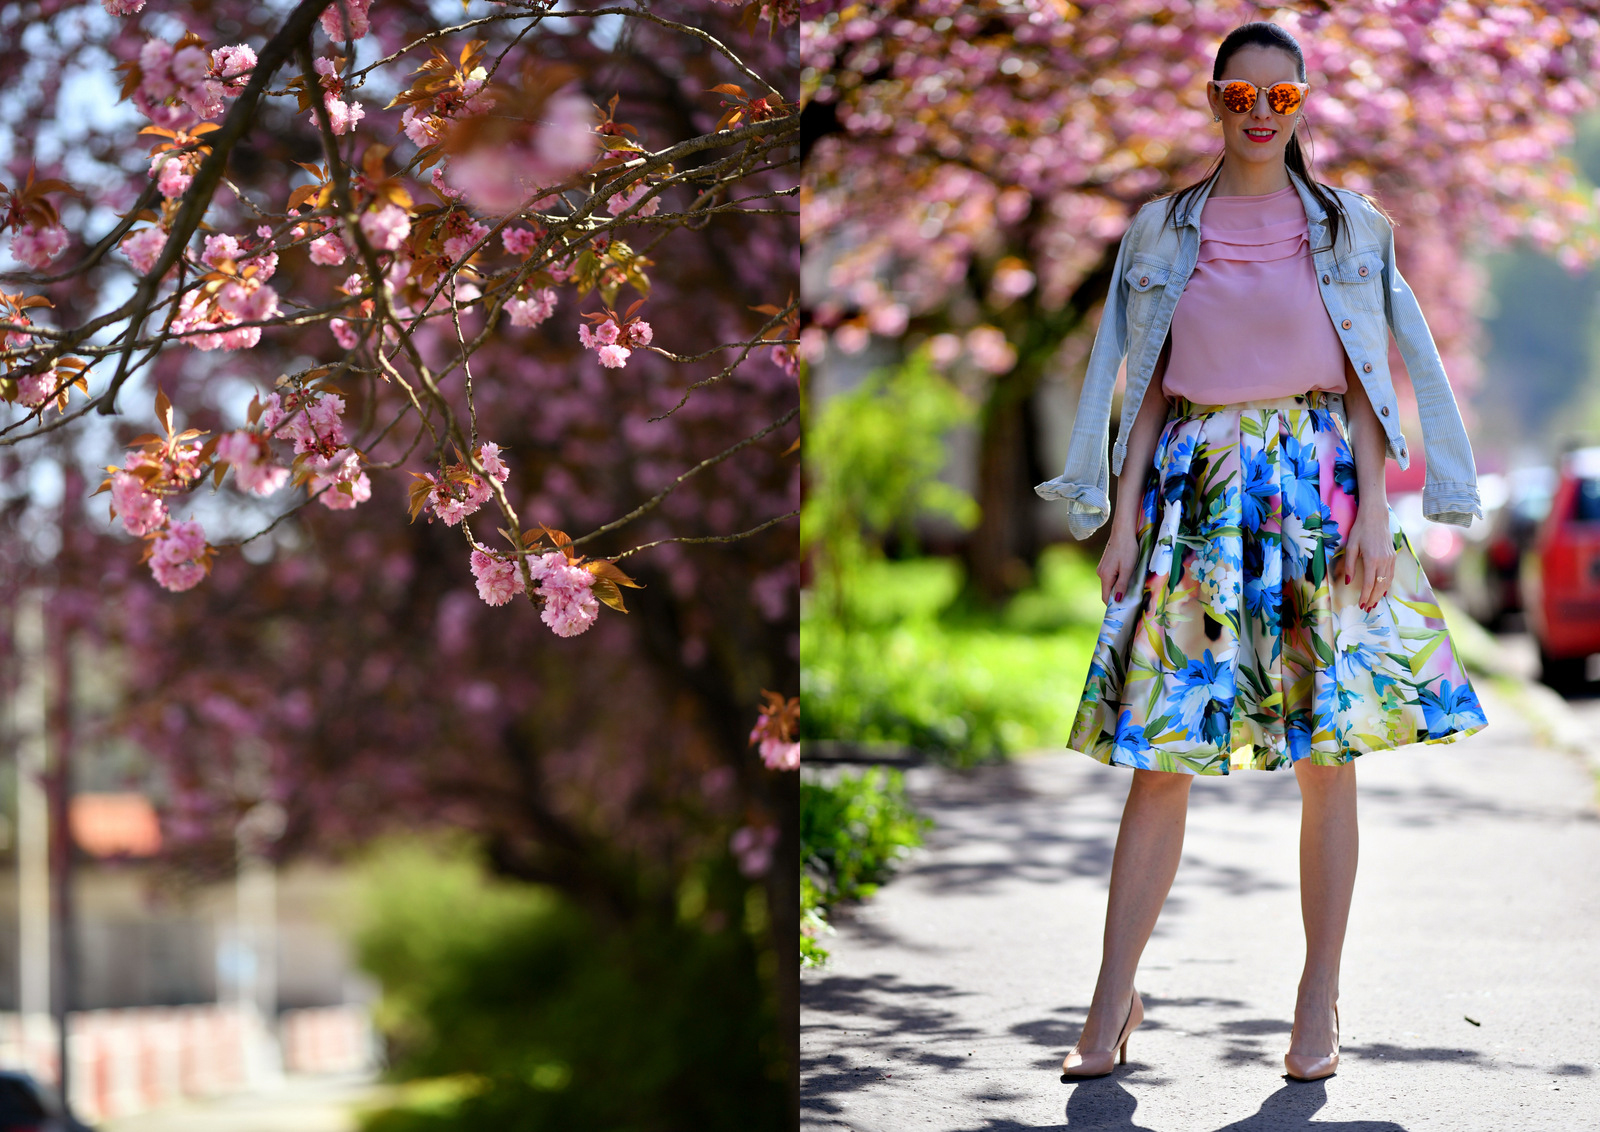 kvetovaná midi sukňa // handmade floral midi skirt in outfit with pink blouse